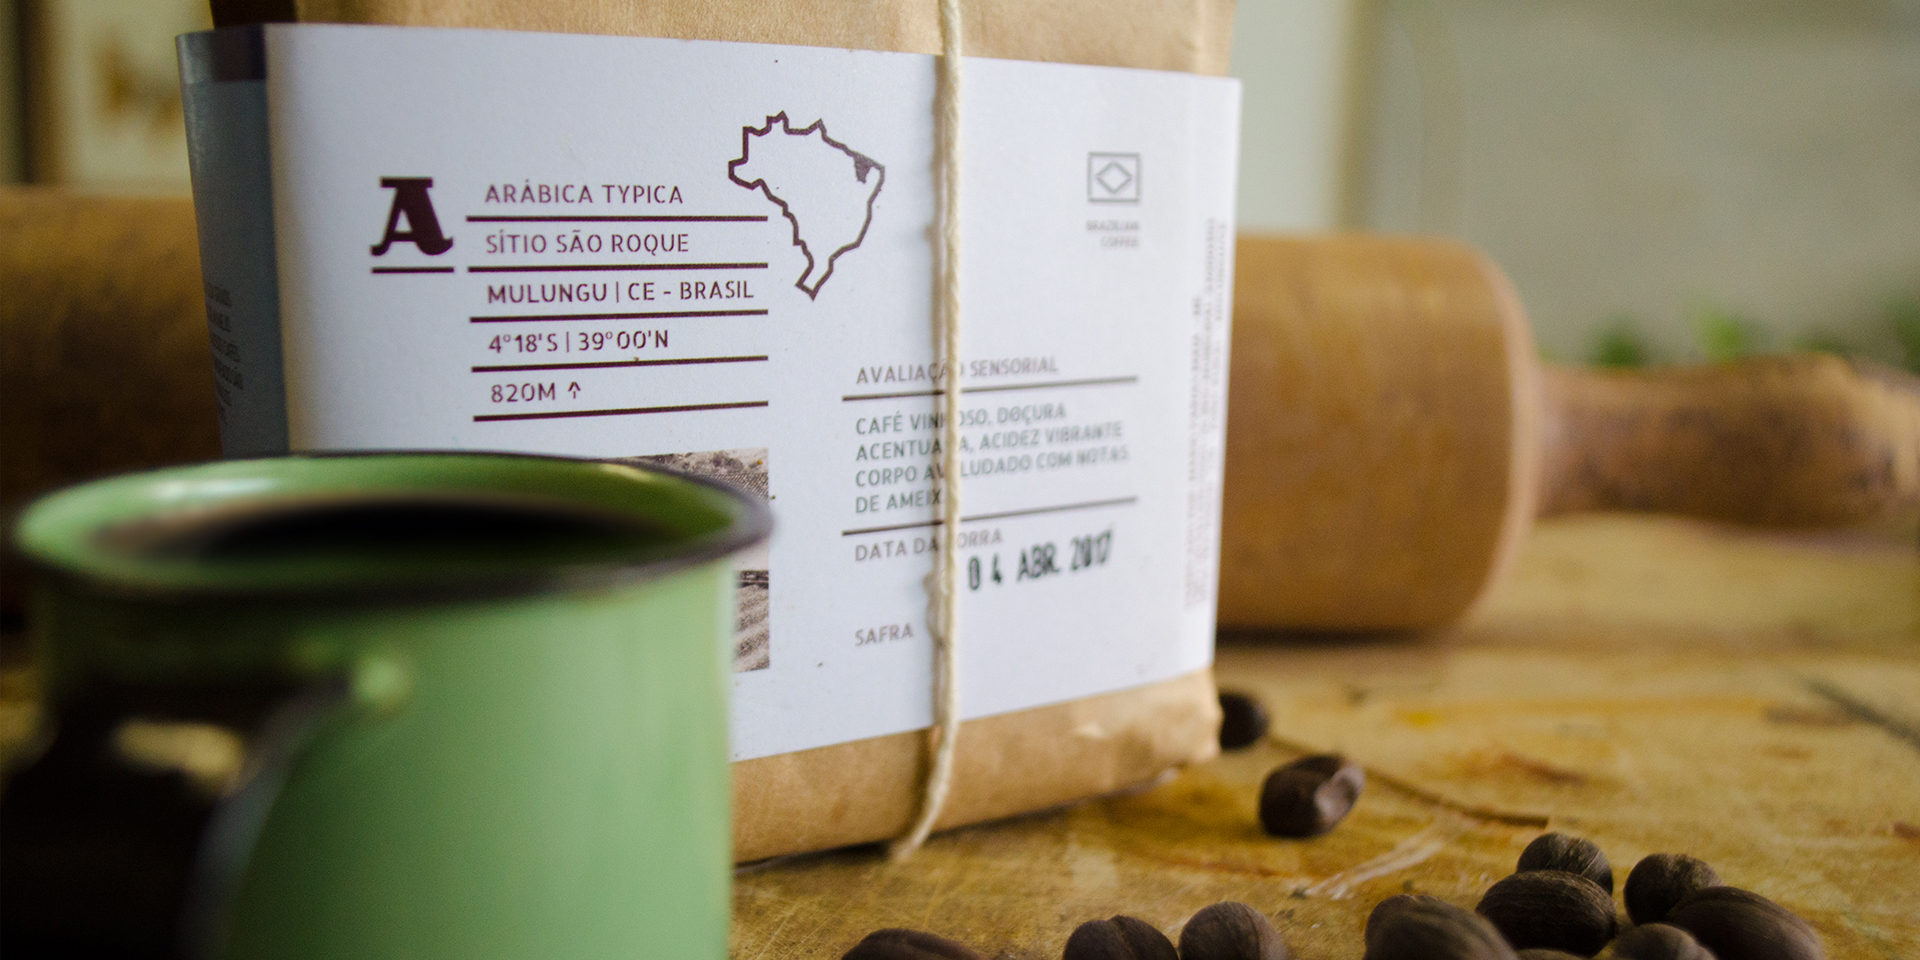 Brand and Packaging for Artisanal Coffee Products / World Brand Design Society